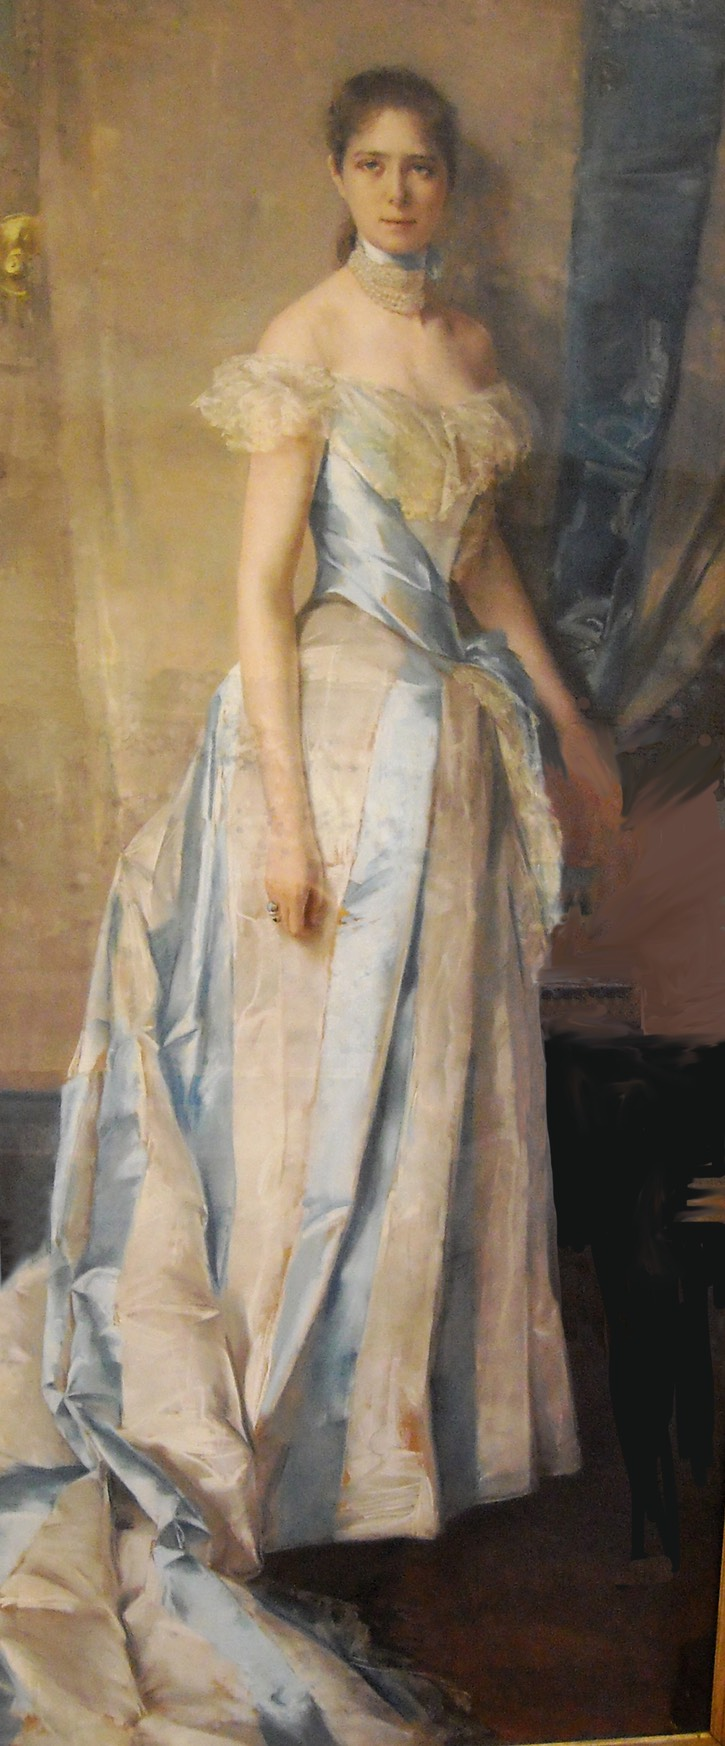 1889 Probably Maria Bianca Gallone, Princess Marsico Nuovo by Charles Hermans (Bruxelles 1839-1911) (Capodimonte Museum - Napoli, Campania, Italy) From Carlo Raso's photostream on flickr